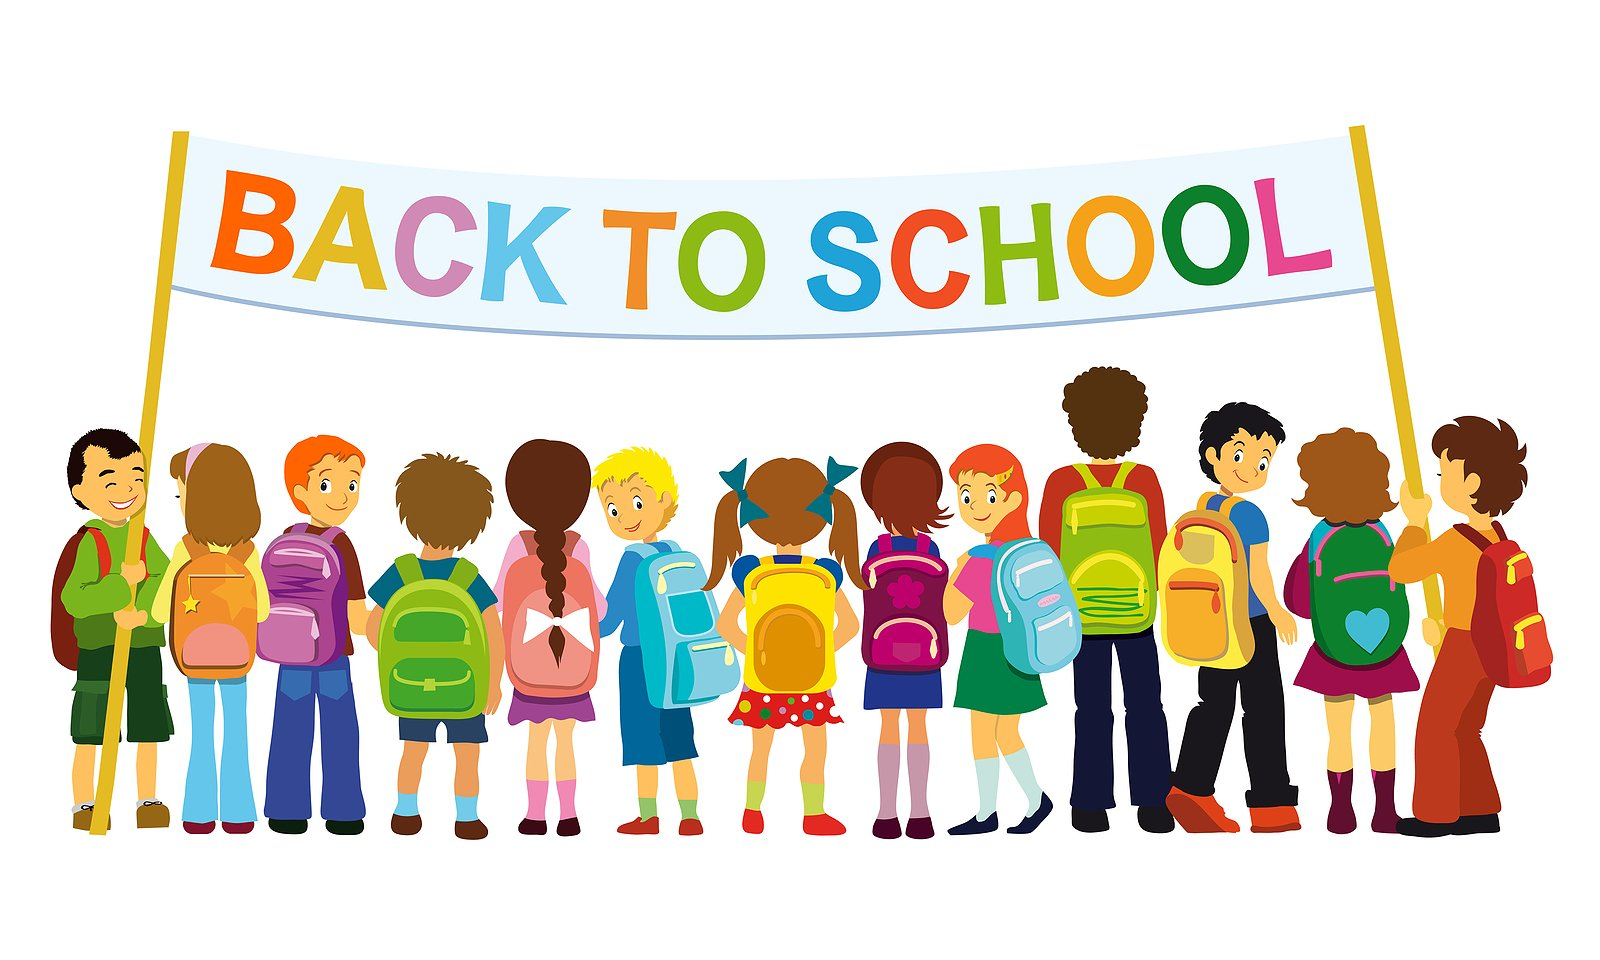 Welcome To School Clipart - ClipArt Best Welcome Back To School Clipart